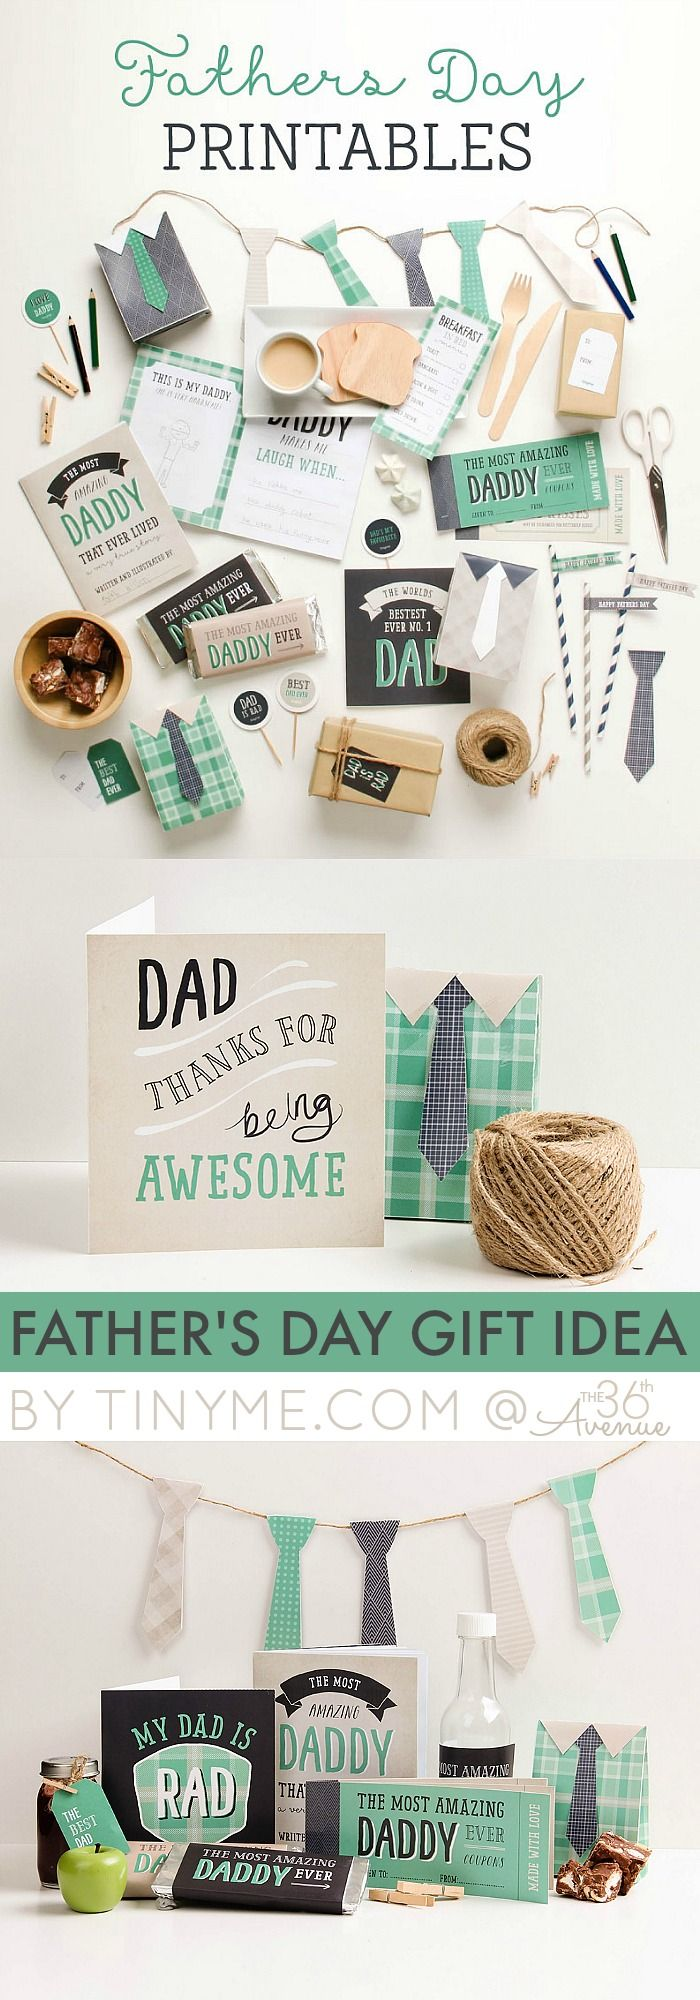 Father's Day Free Printables and Gift Idea by tinyme.com at the36thavenue.com...